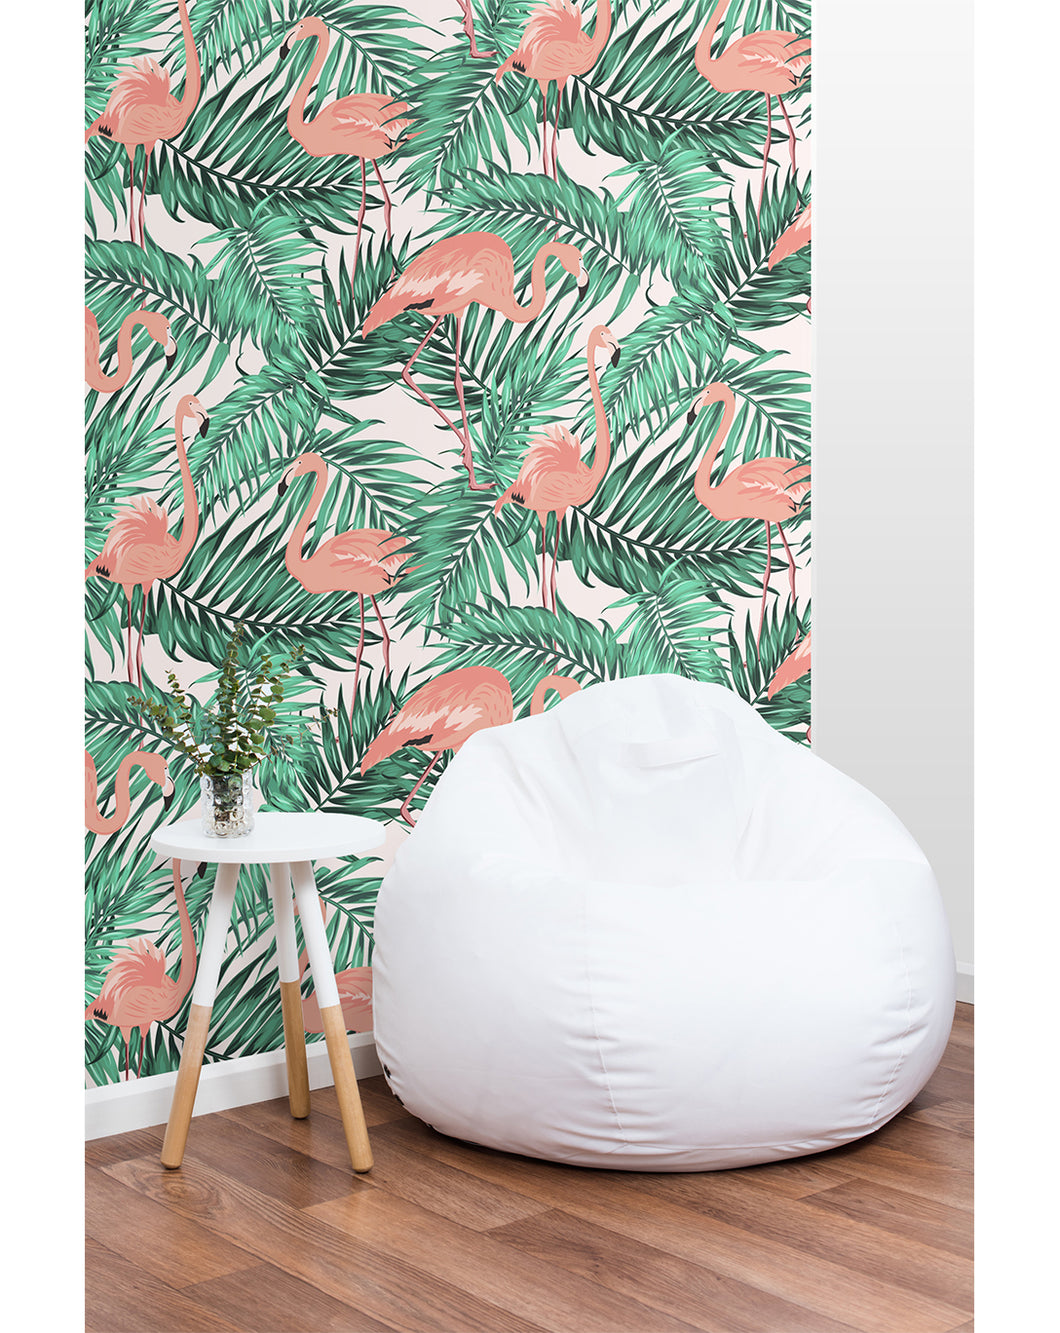 Self Adhesive Removable Wallpaper Tropical Palm Leaves With Flamingos Costacover